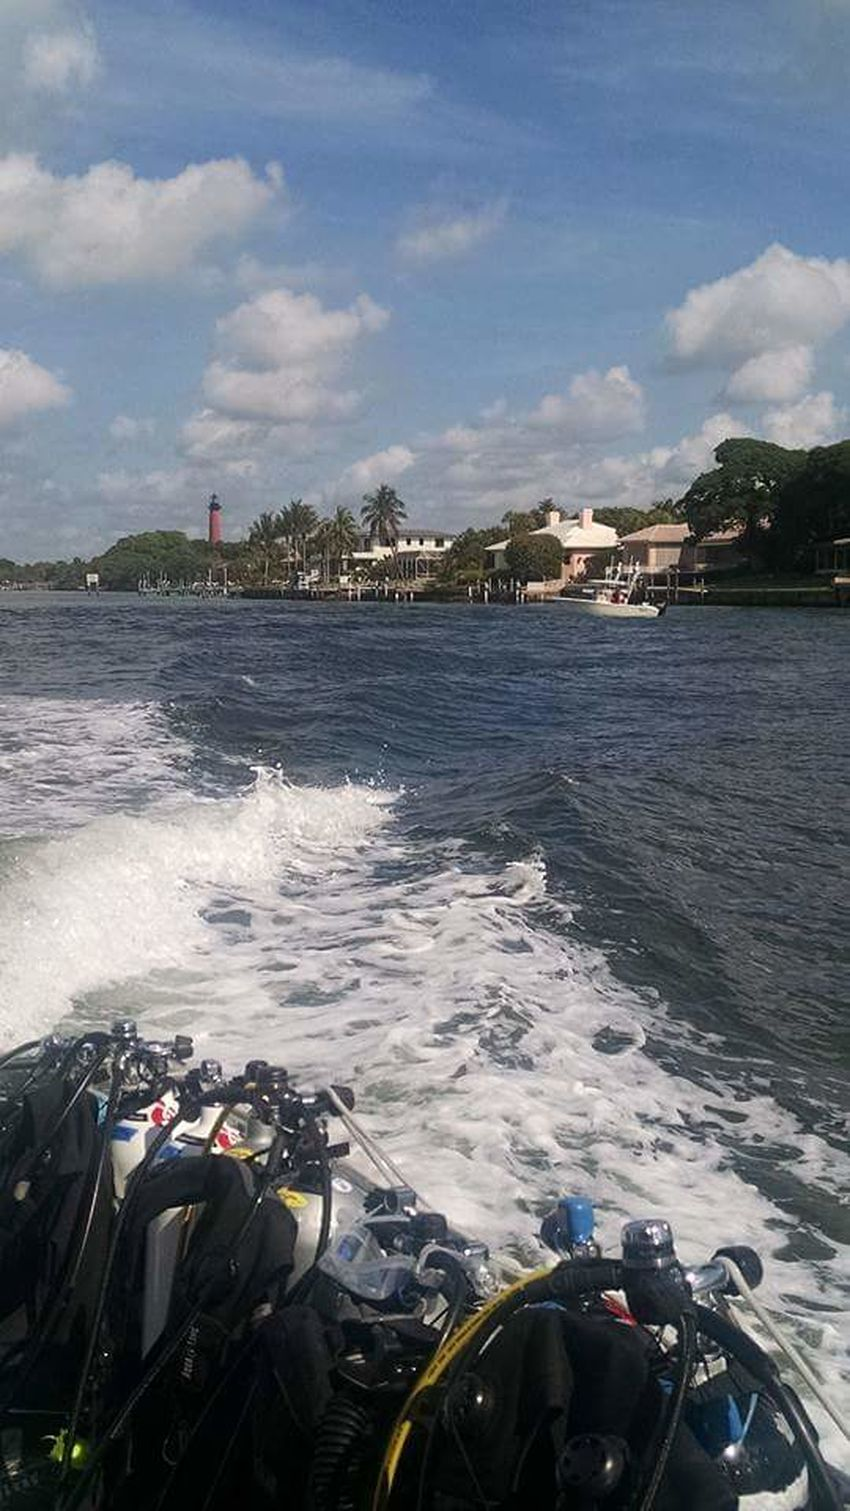 Heading out for a scuba day Heading Out Scuba Diving Scuba Day Tanks On Board Atlantic Ocean Jupiter Inlet Jupiter Lighthouse Leaving A Wake Florida Life Awesome Times